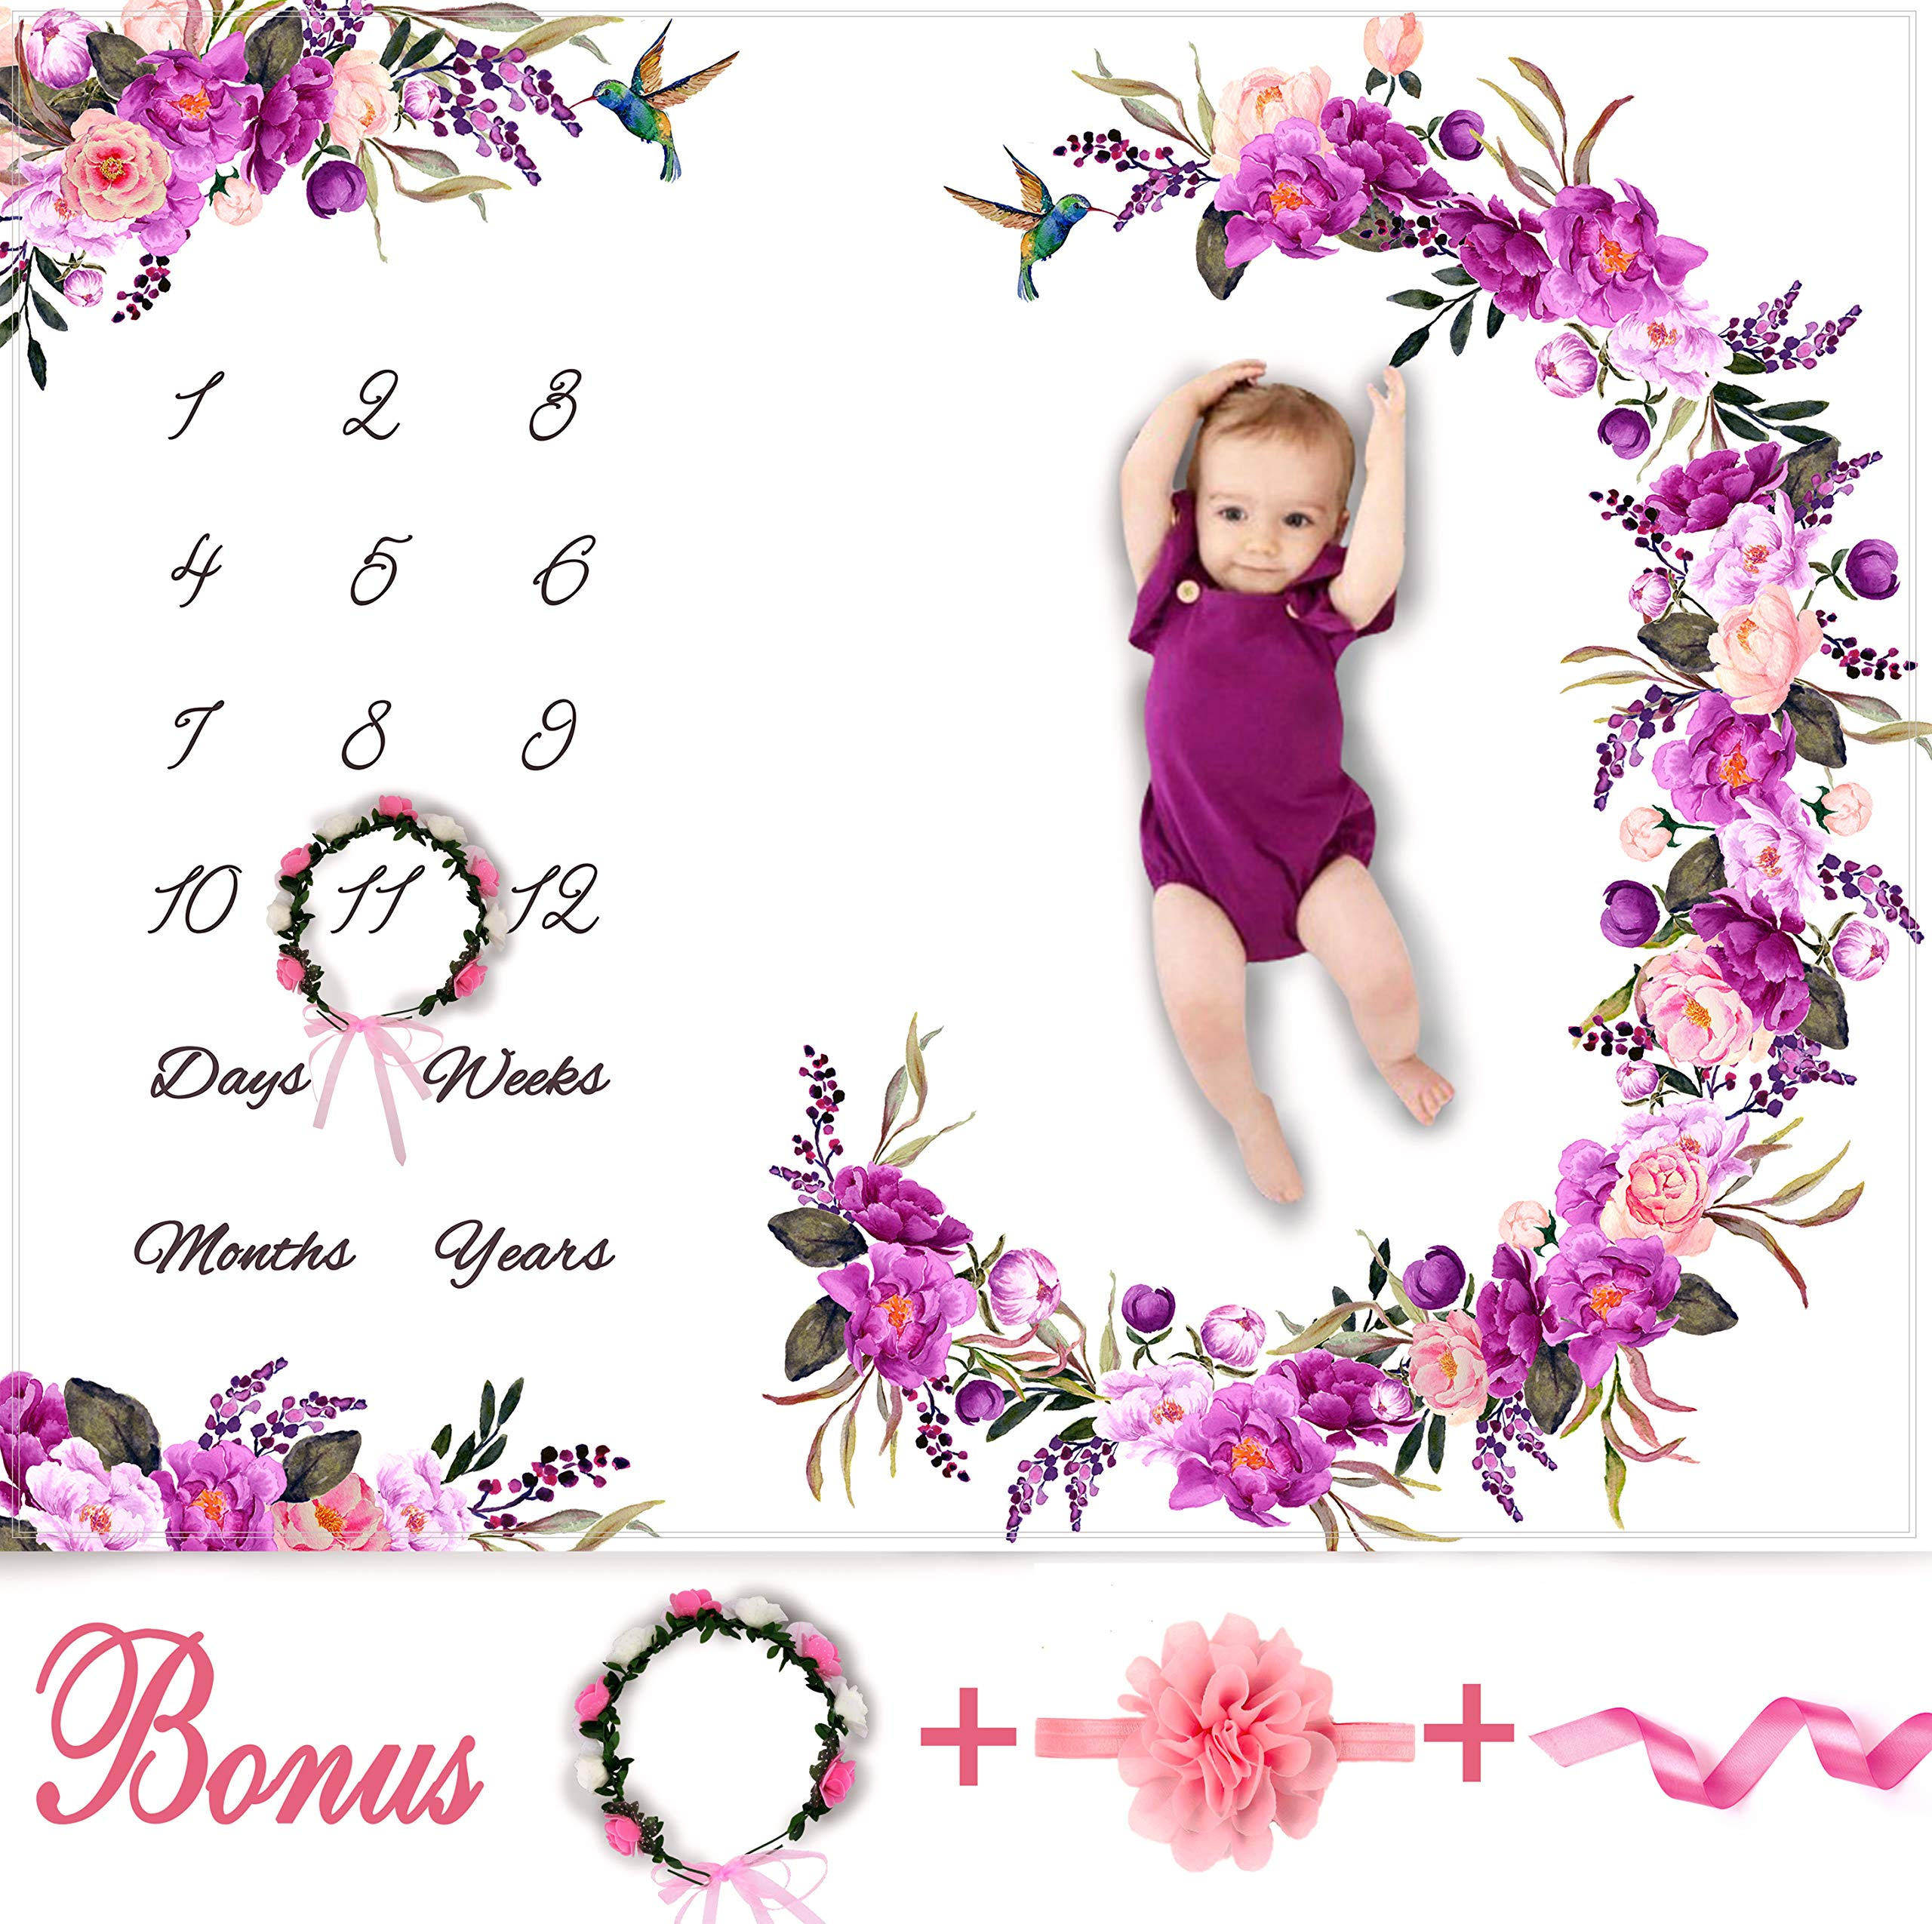 Baby Monthly Milestone Blanket Girl - Floral Plush Fleece Baby Photography Backdrop Memory Blanket for Newborns Large - New Moms Baby Shower Gift Set - 100% Wrinkle-Free - Bonus Wreath + Headband by Bliss n' Baby